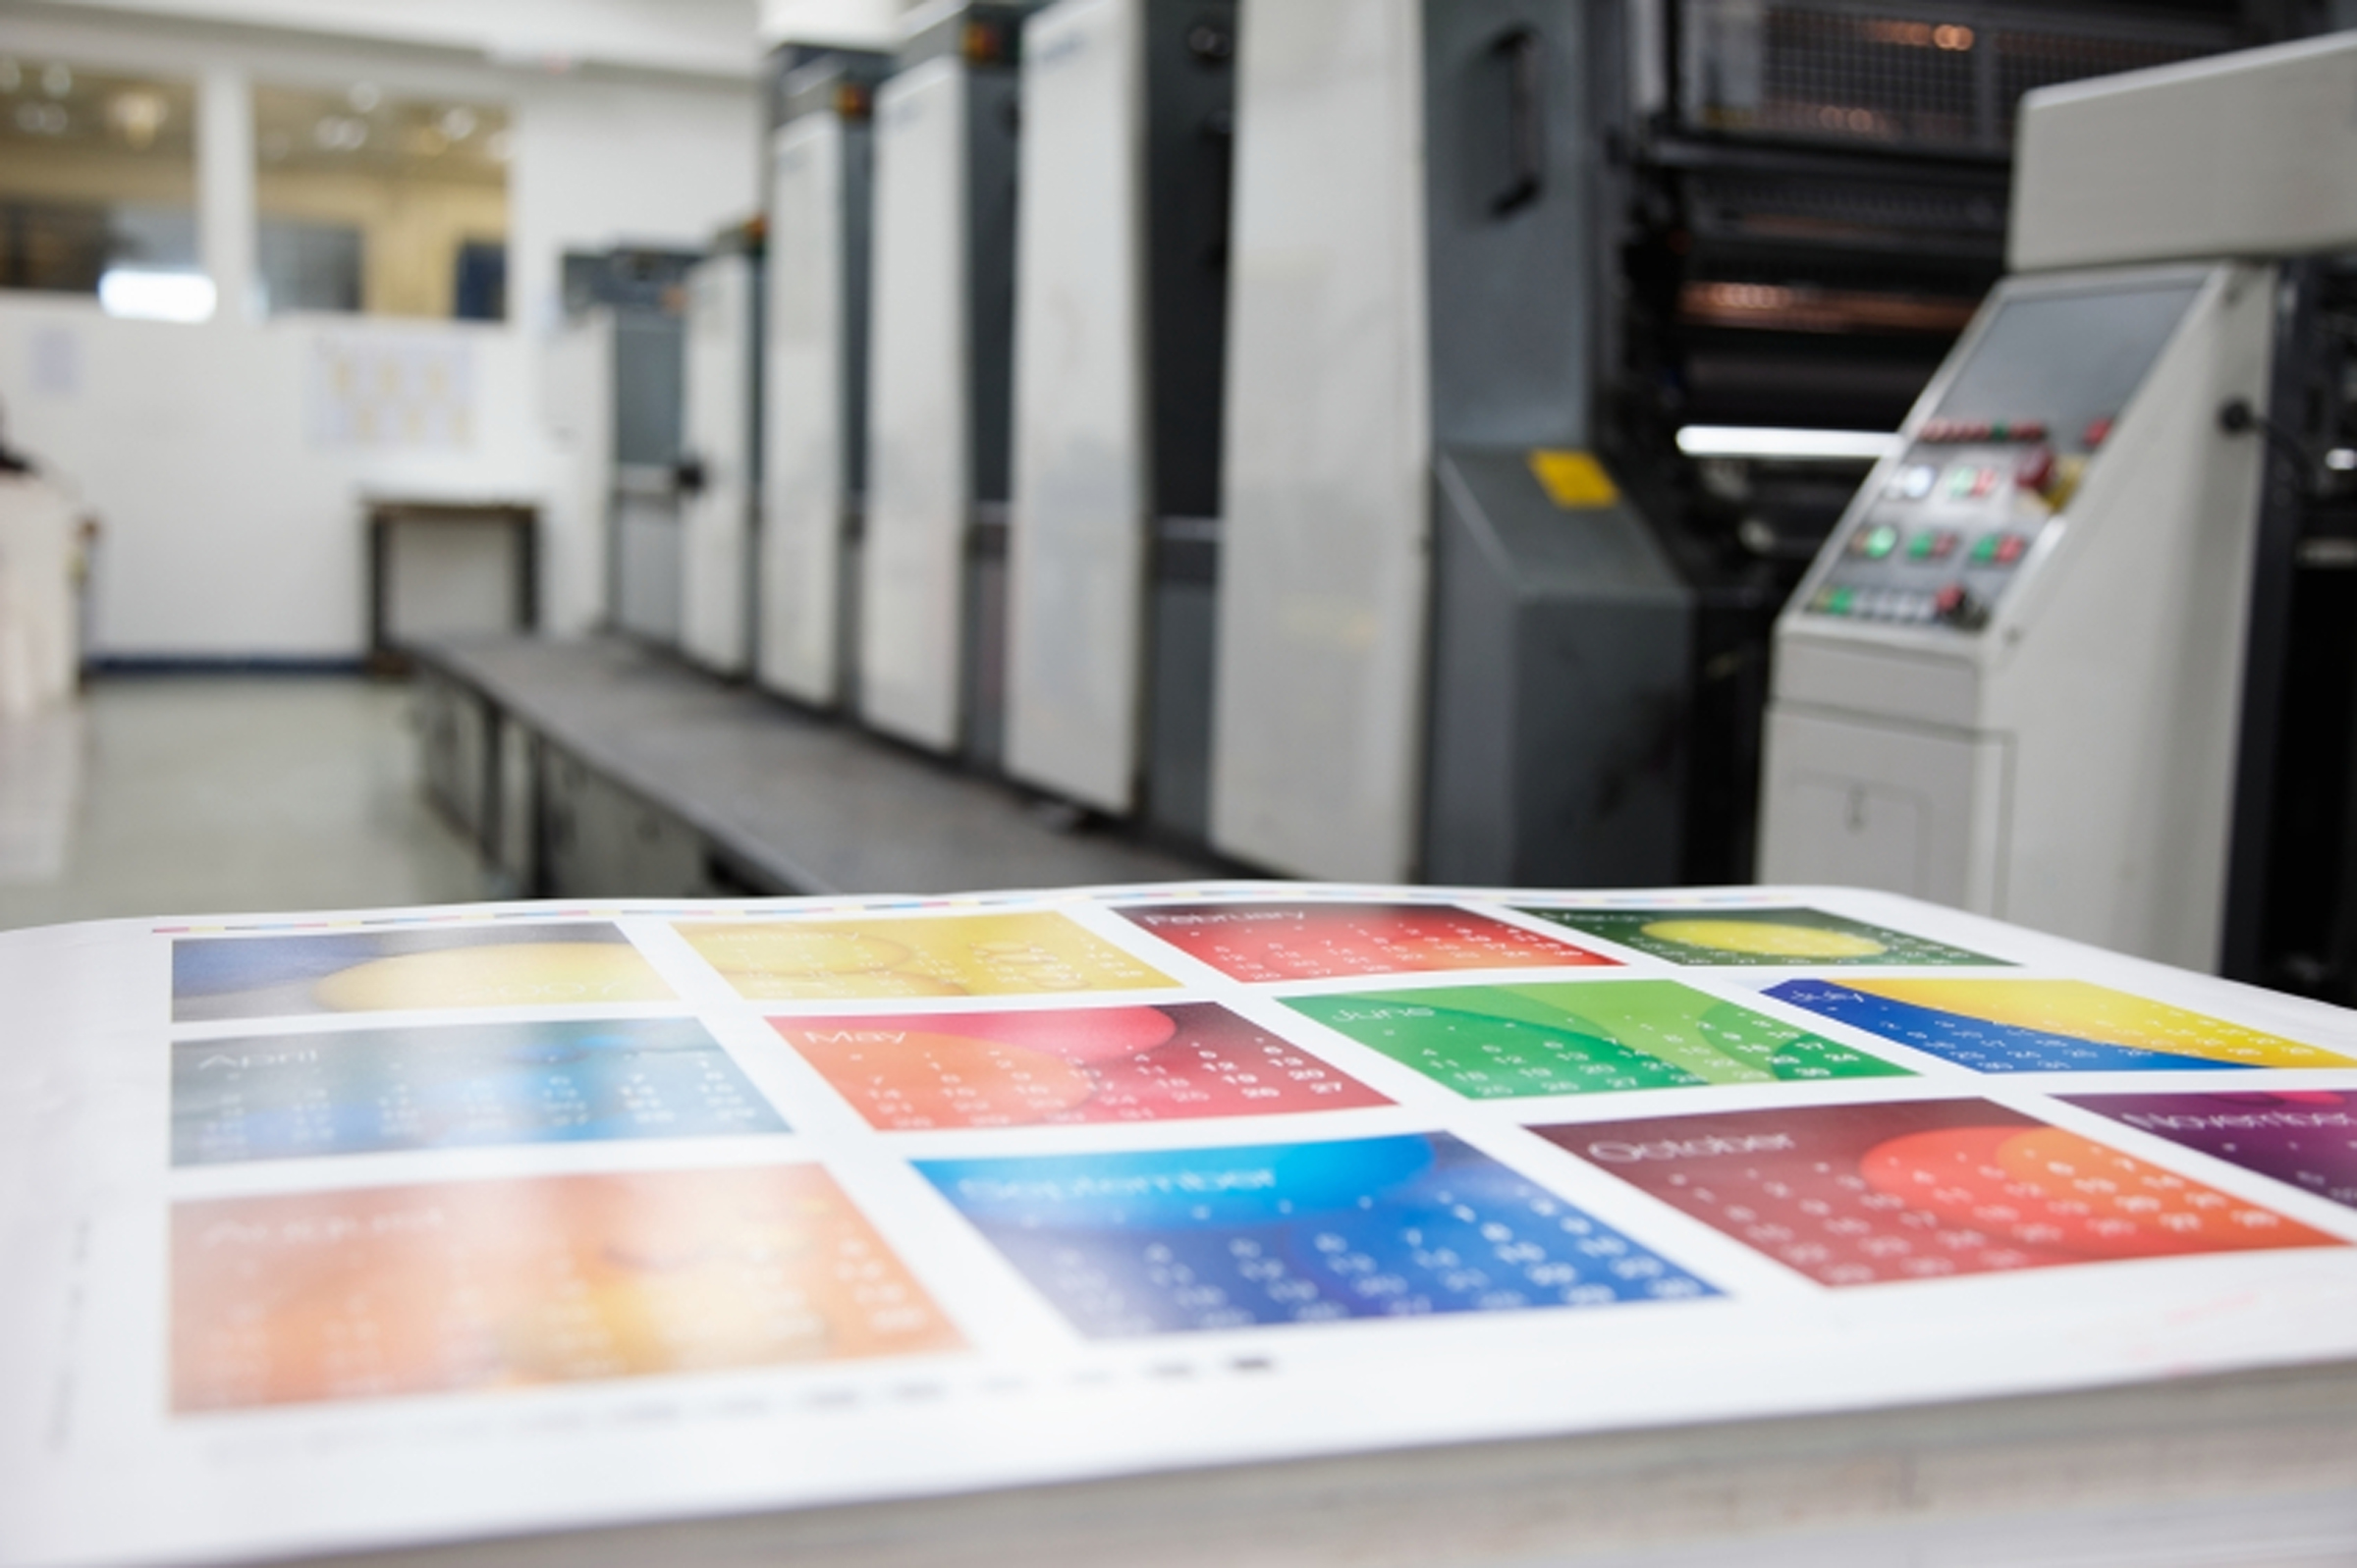 A colourful printed calendar sheet in a press room.